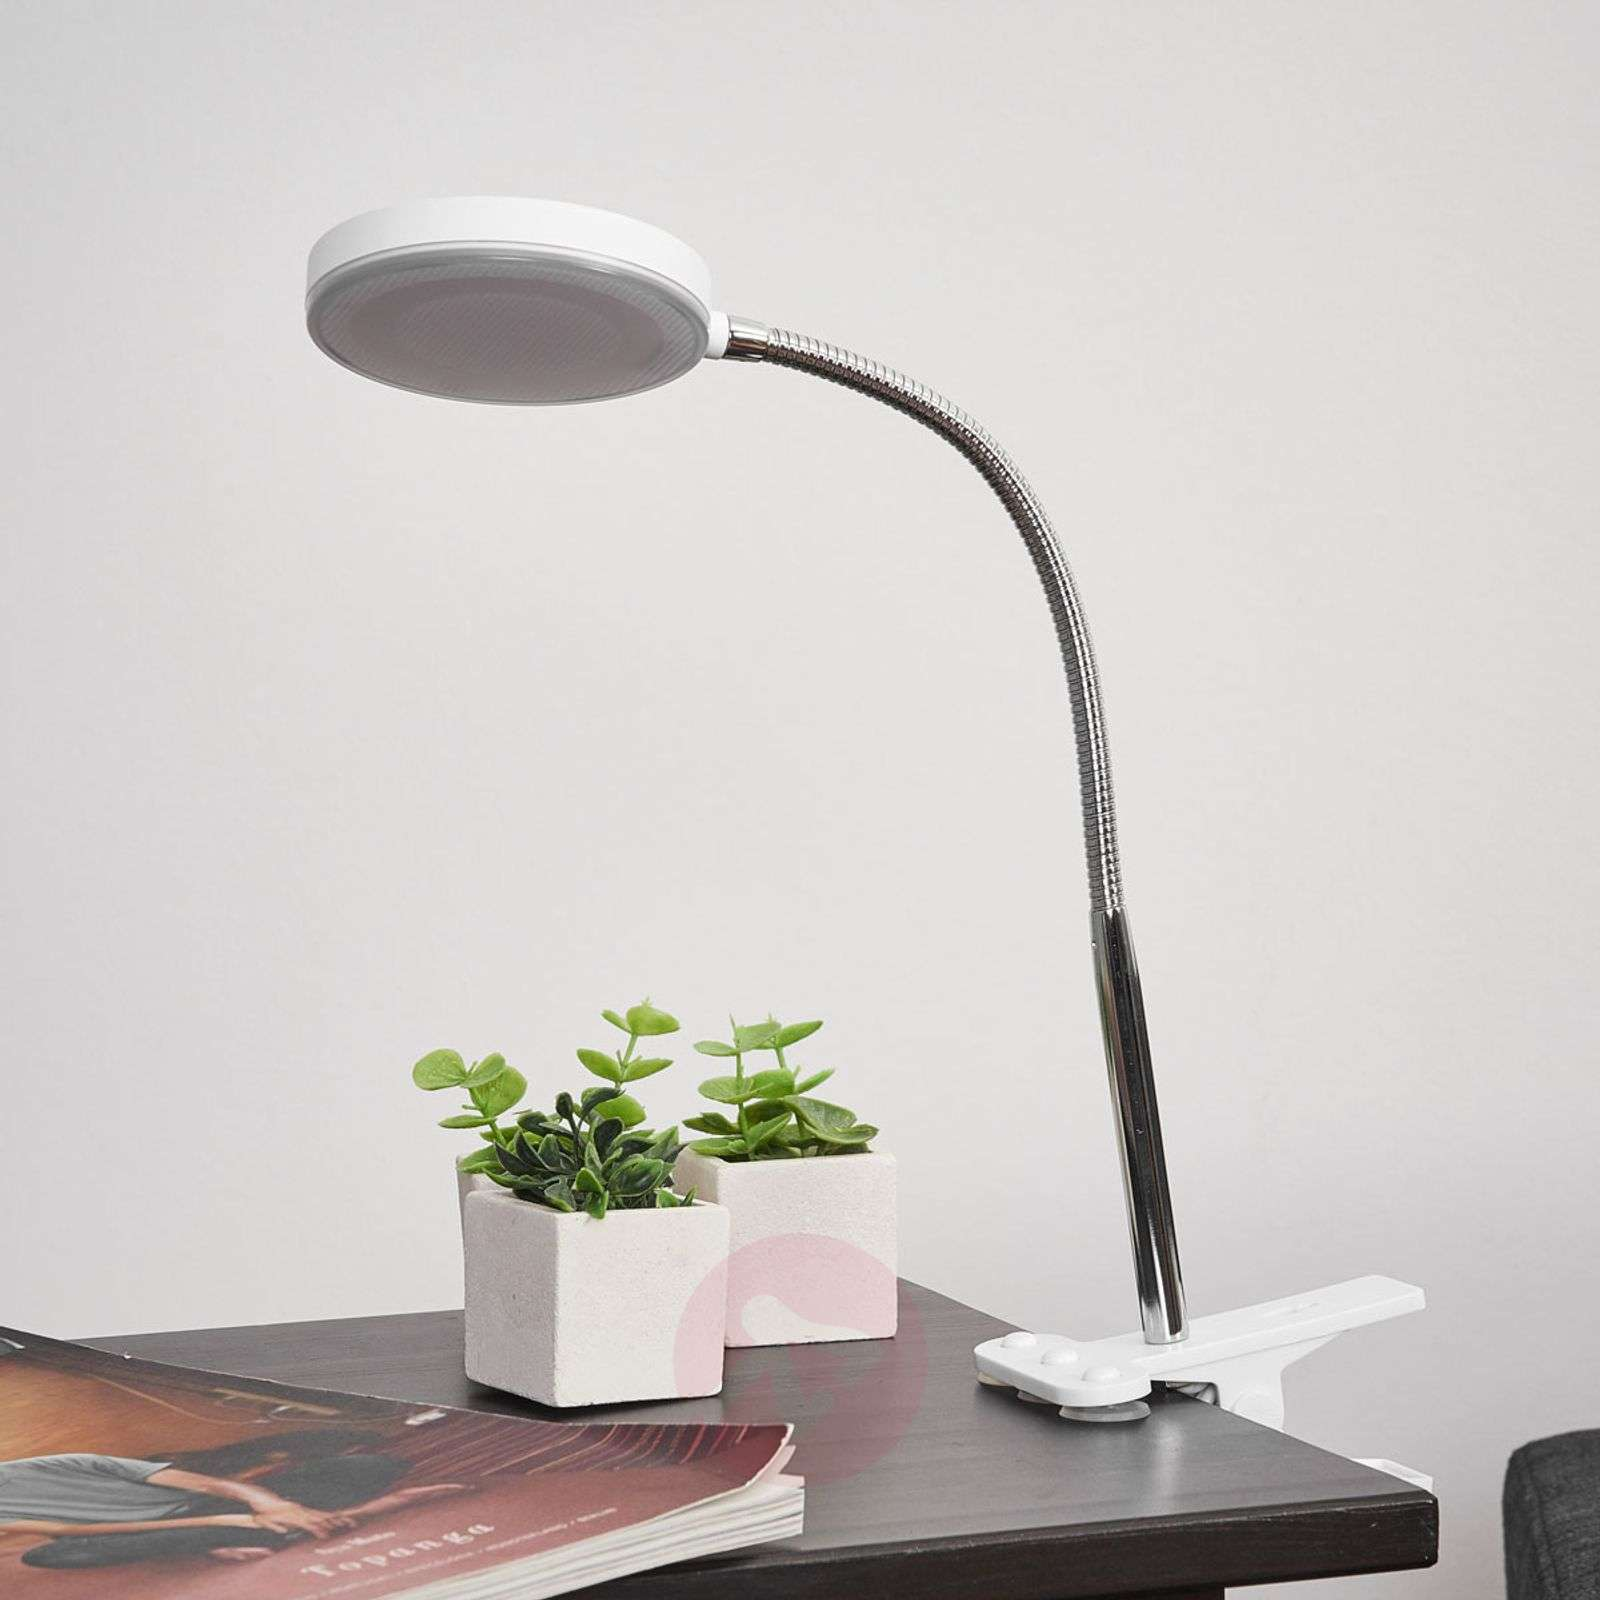 Clip-on table lamp Milow with LED and flexible arm-9643027-02